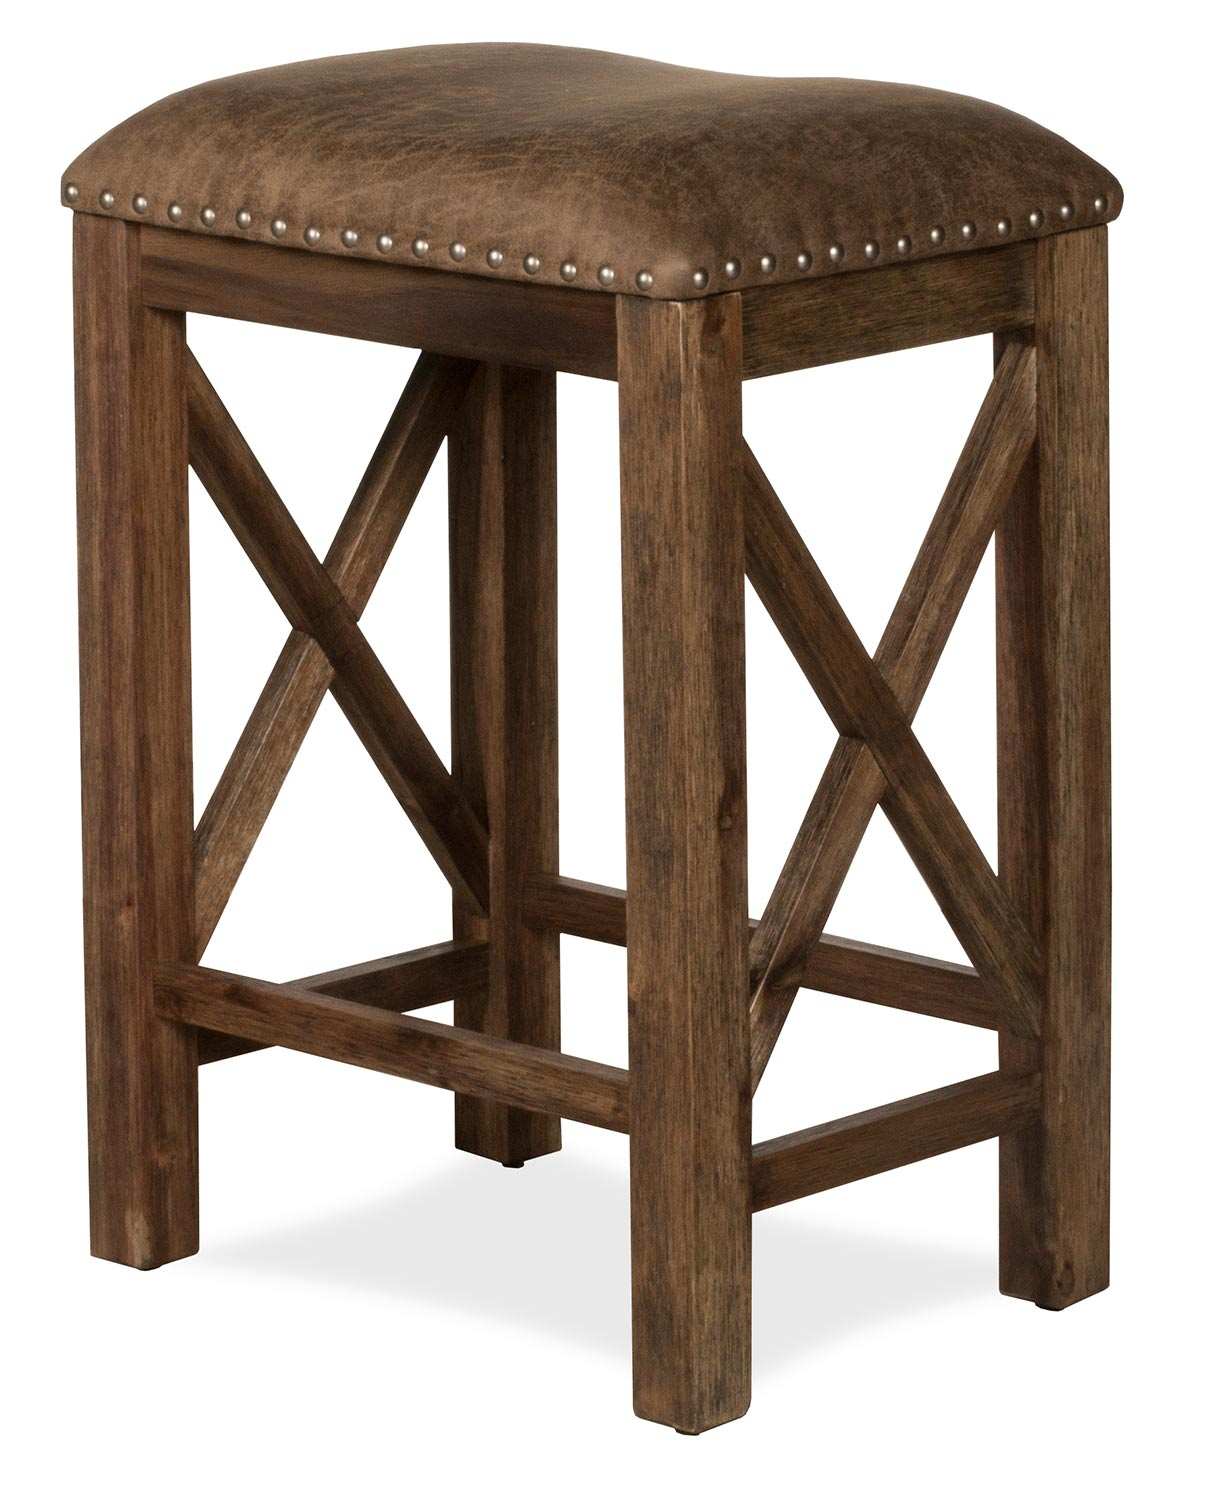 Hillsdale Willow Bend Stationary Counter Height Stool